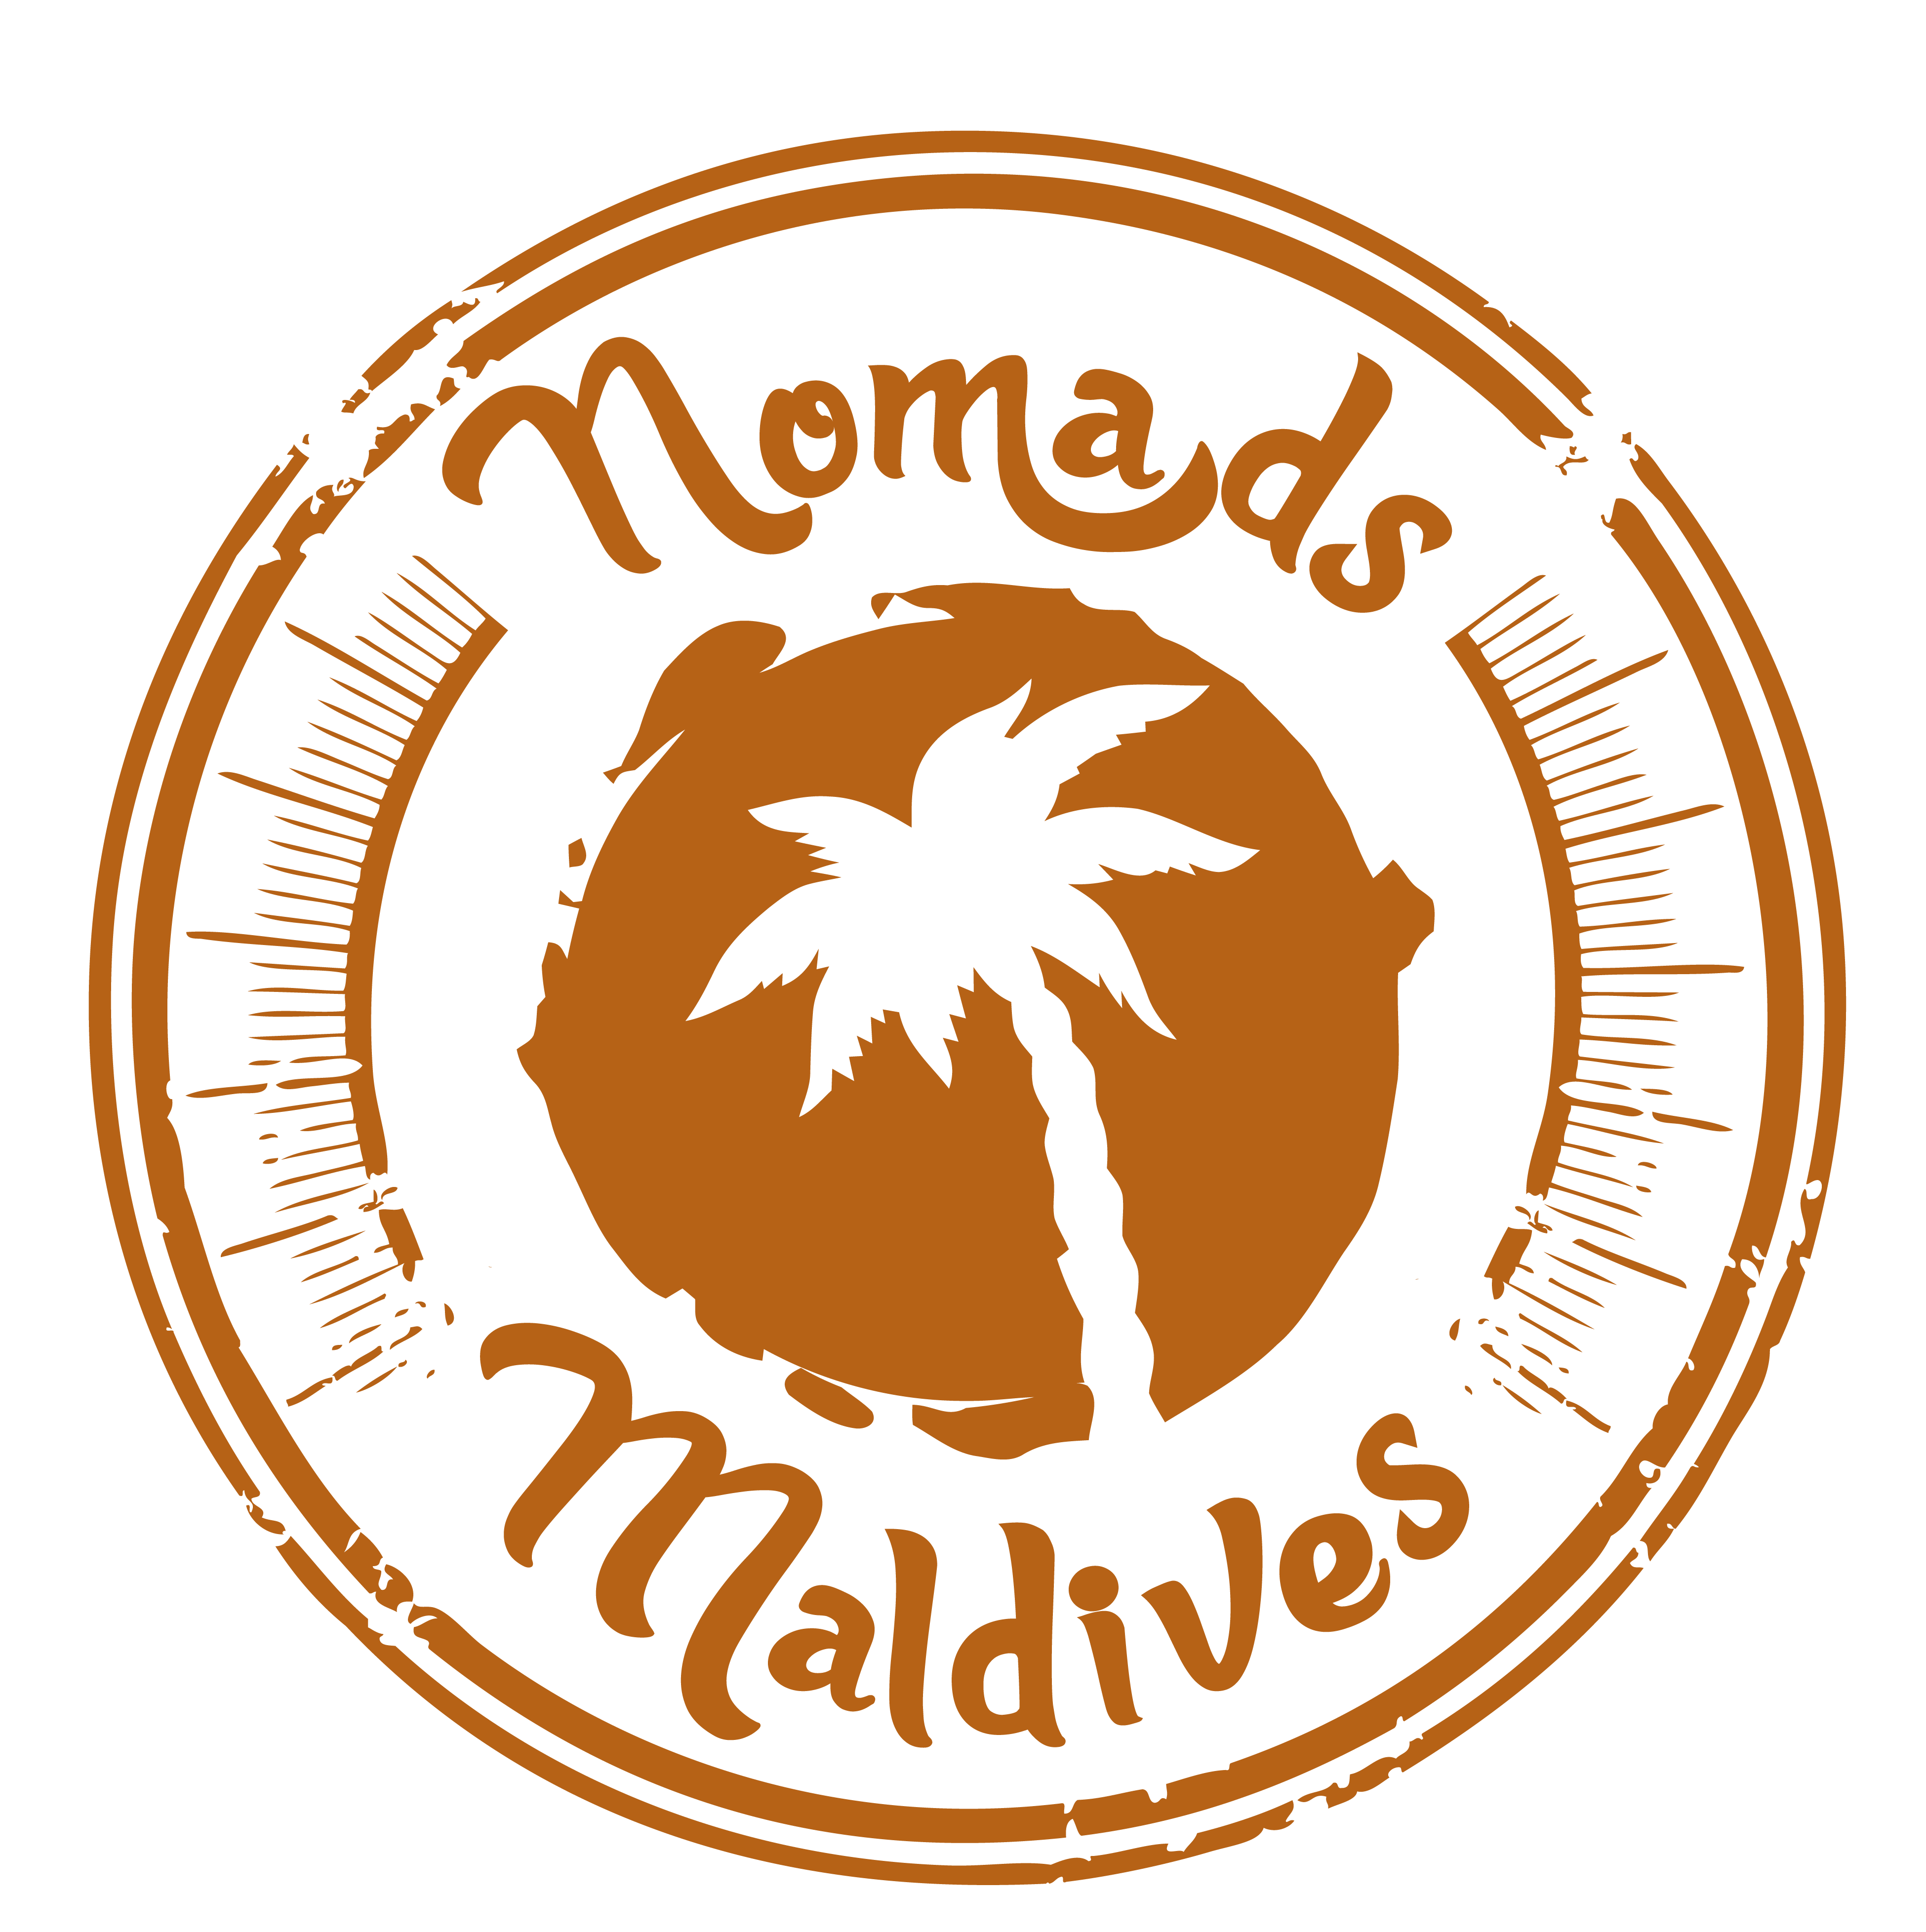 SelloNomadMALDIVES_Vectorizado.png